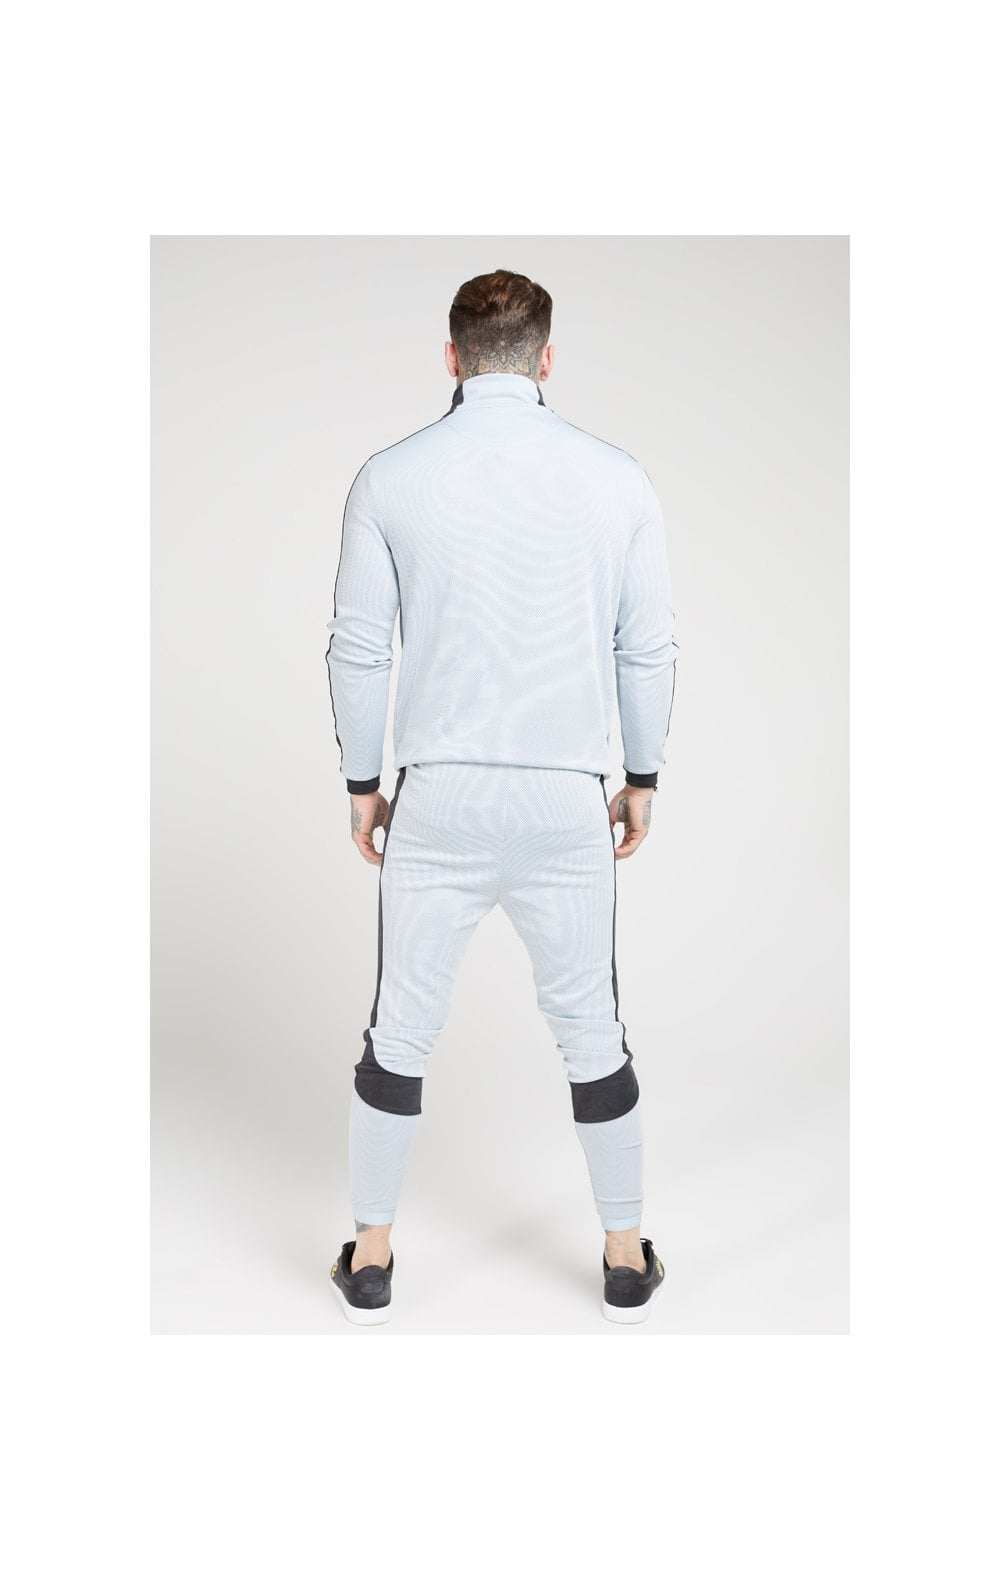 Load image into Gallery viewer, SikSilk Athlete Eyelet Tape Track Pants – Ice Grey & Charcoal (4)